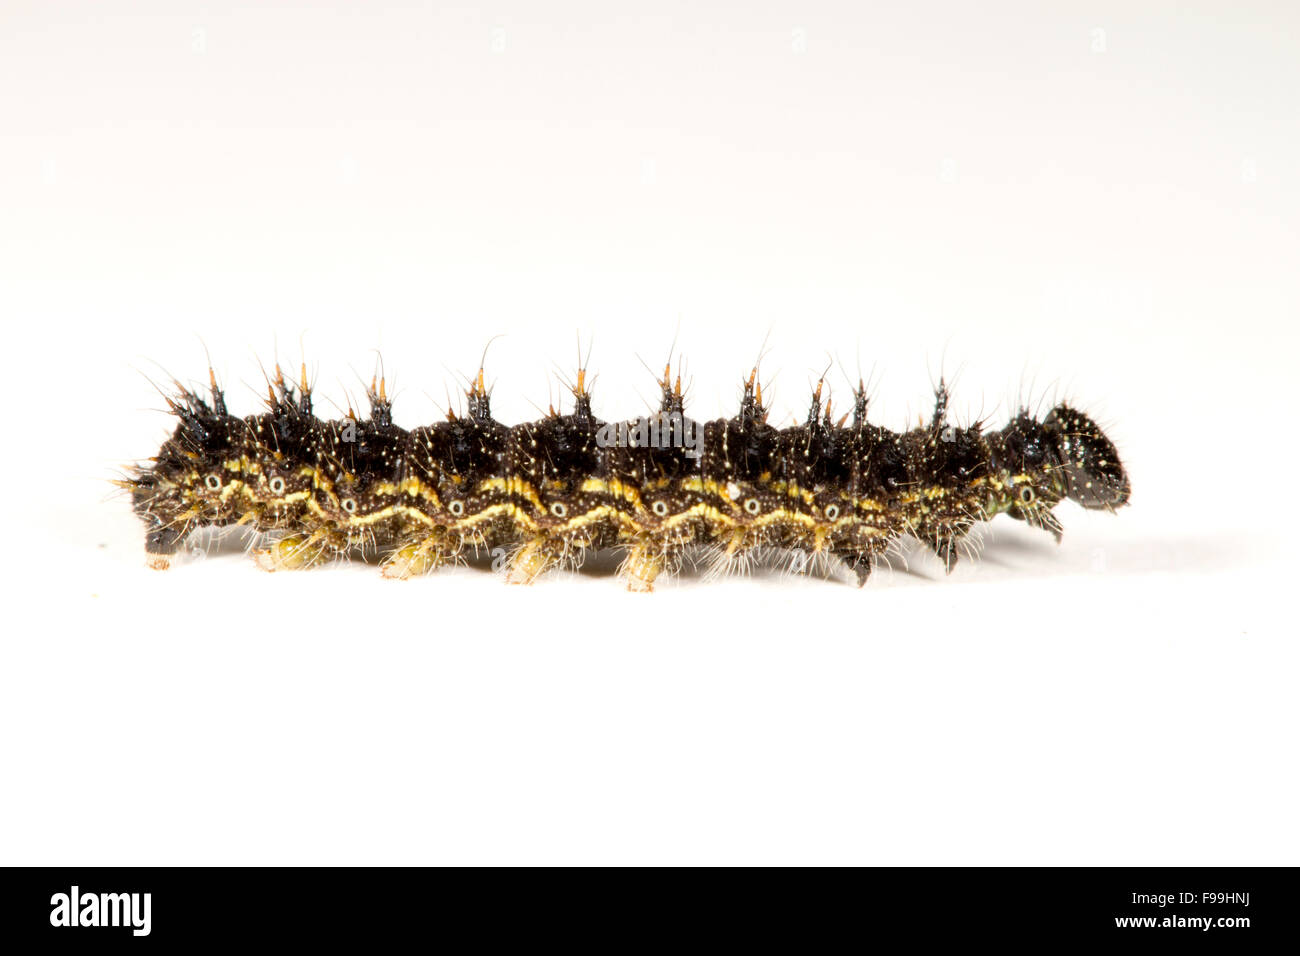 Small Tortoiseshell (Aglais urticae) full-grown larva photographed against a white background. Powys, Wales, August. - Stock Image